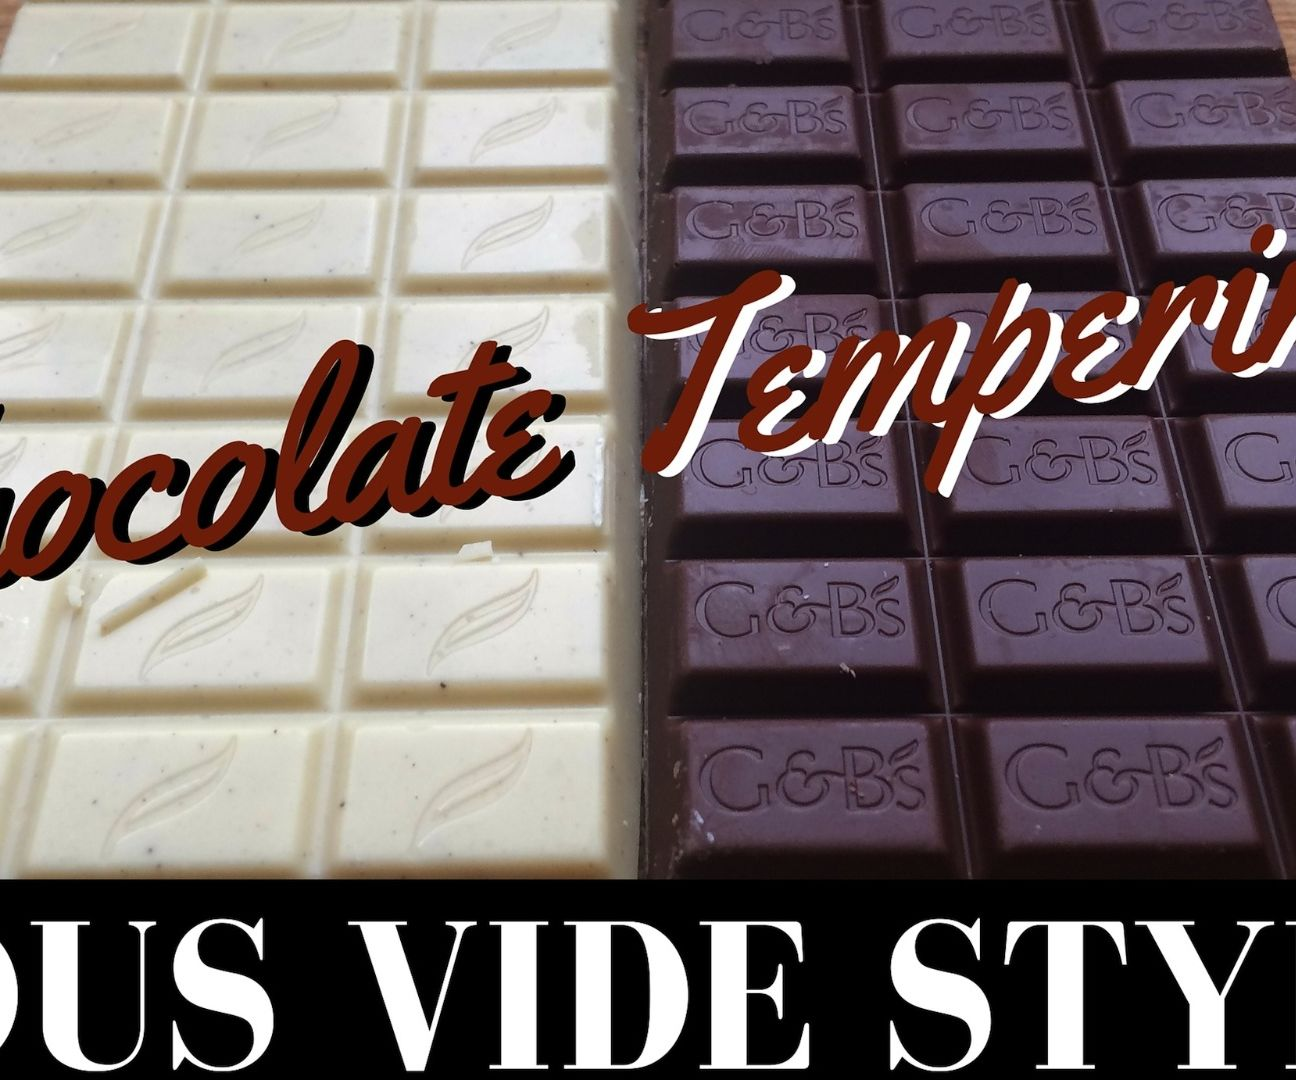 Chocolate Tempering: Sous Vide Style